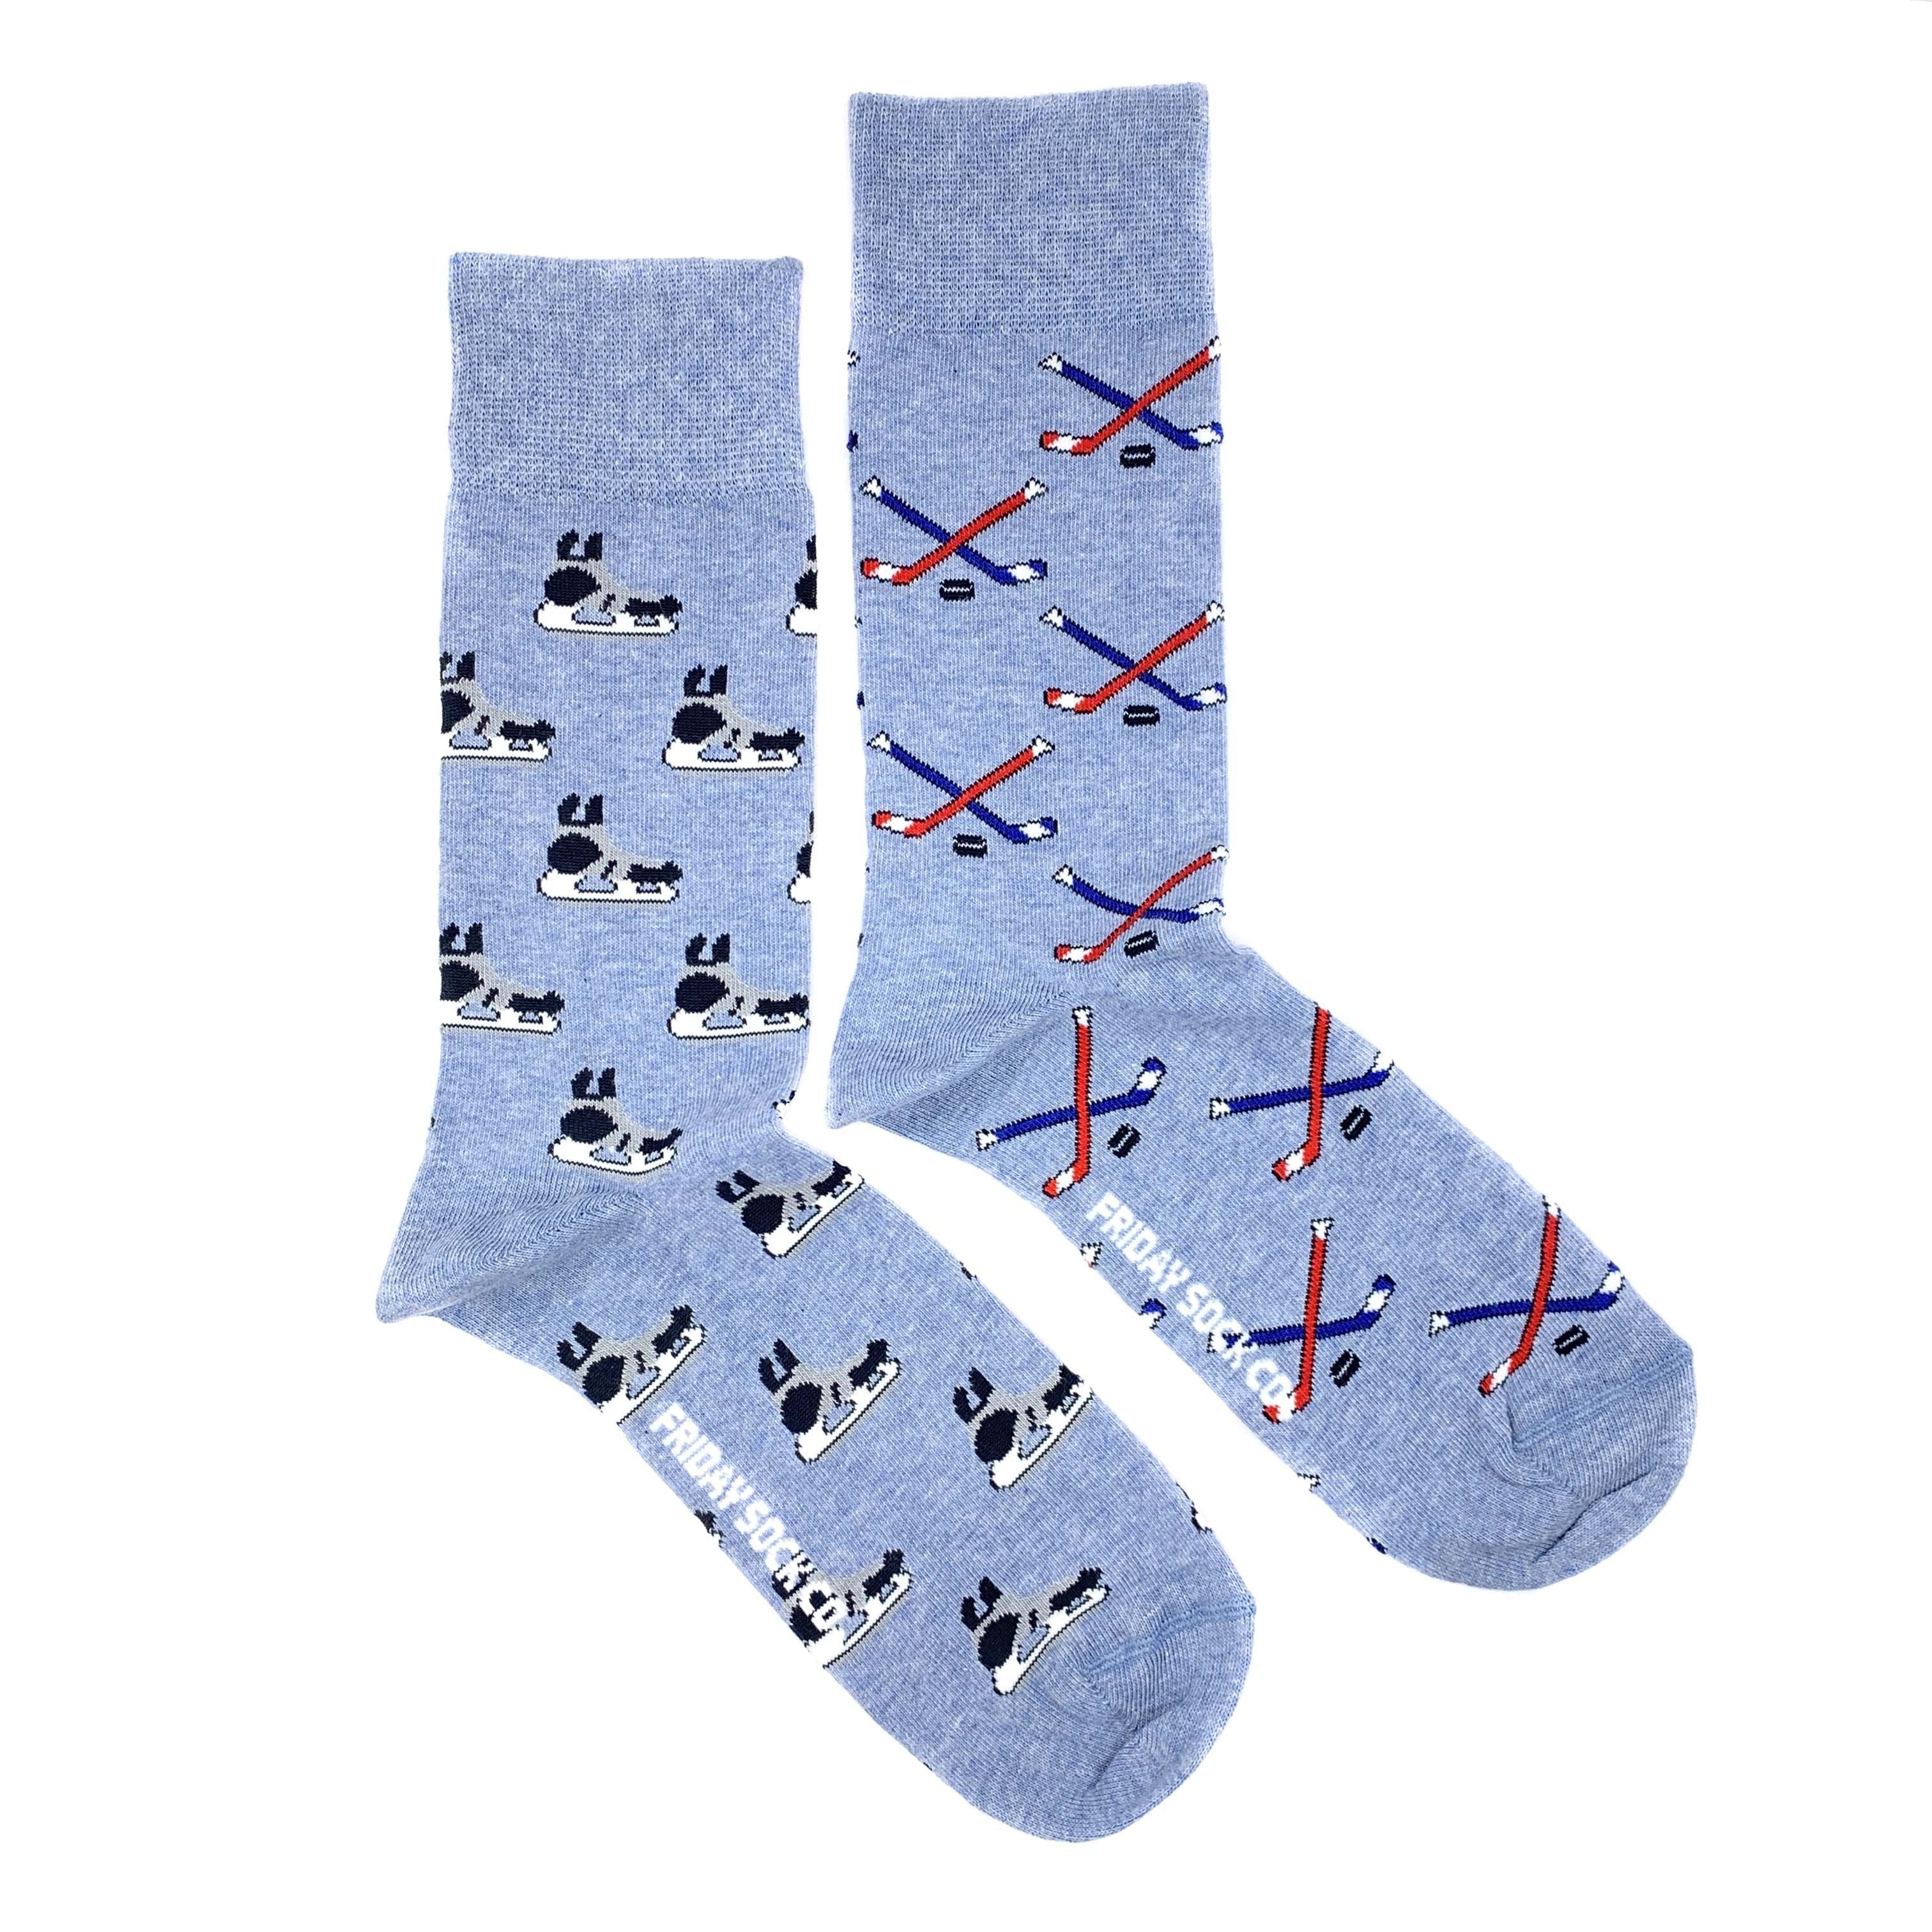 Men's Midcalf Socks - Hockey